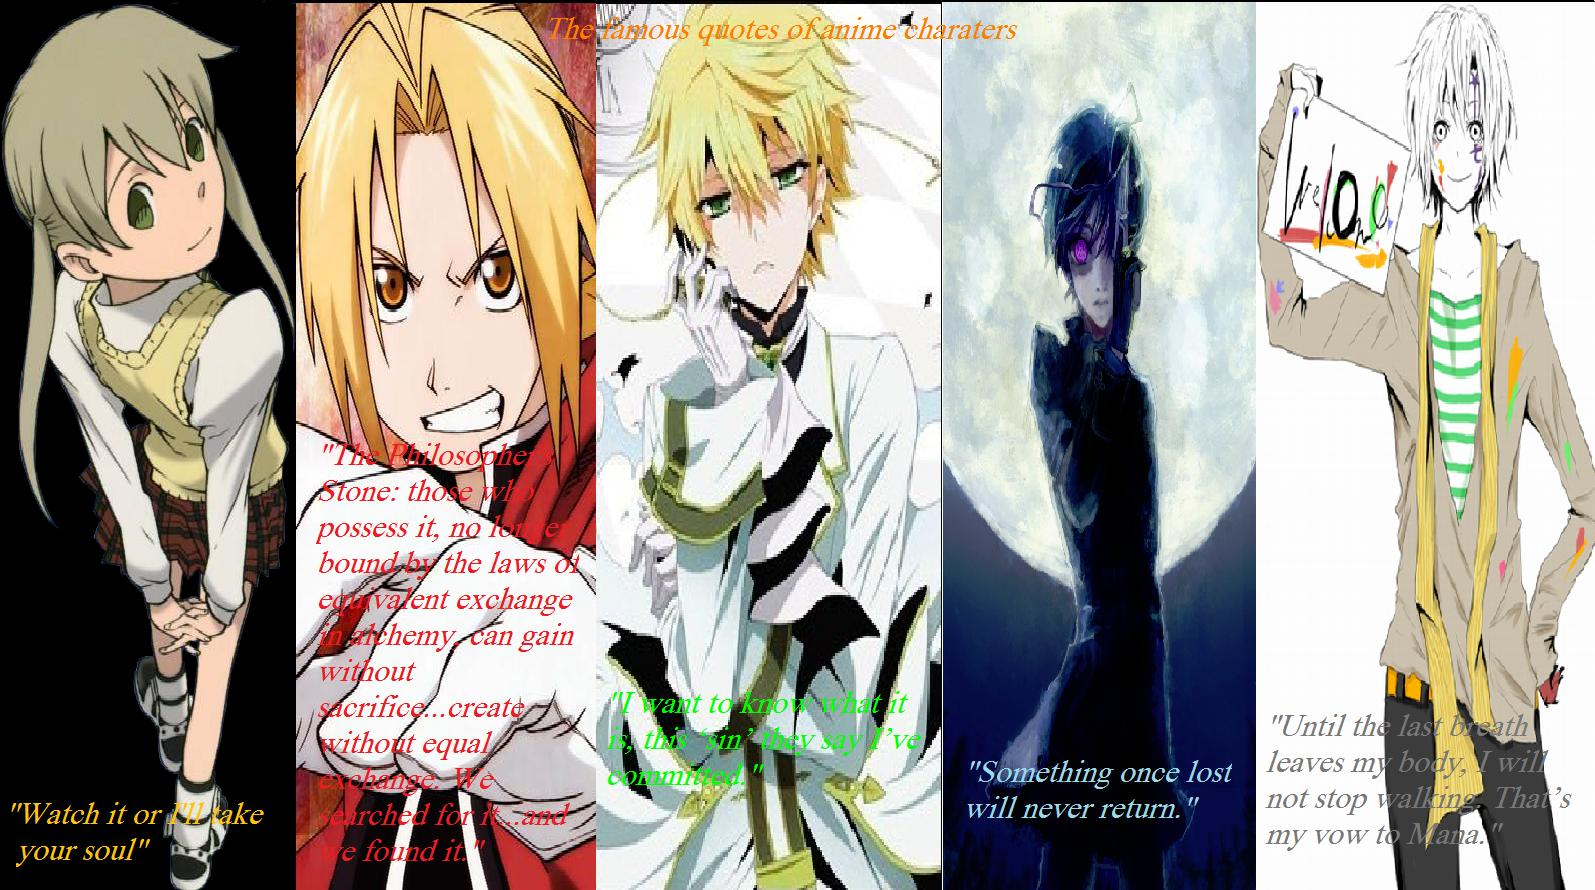 The Famous Quotes Of Anime Characters By AnimeXGhost13